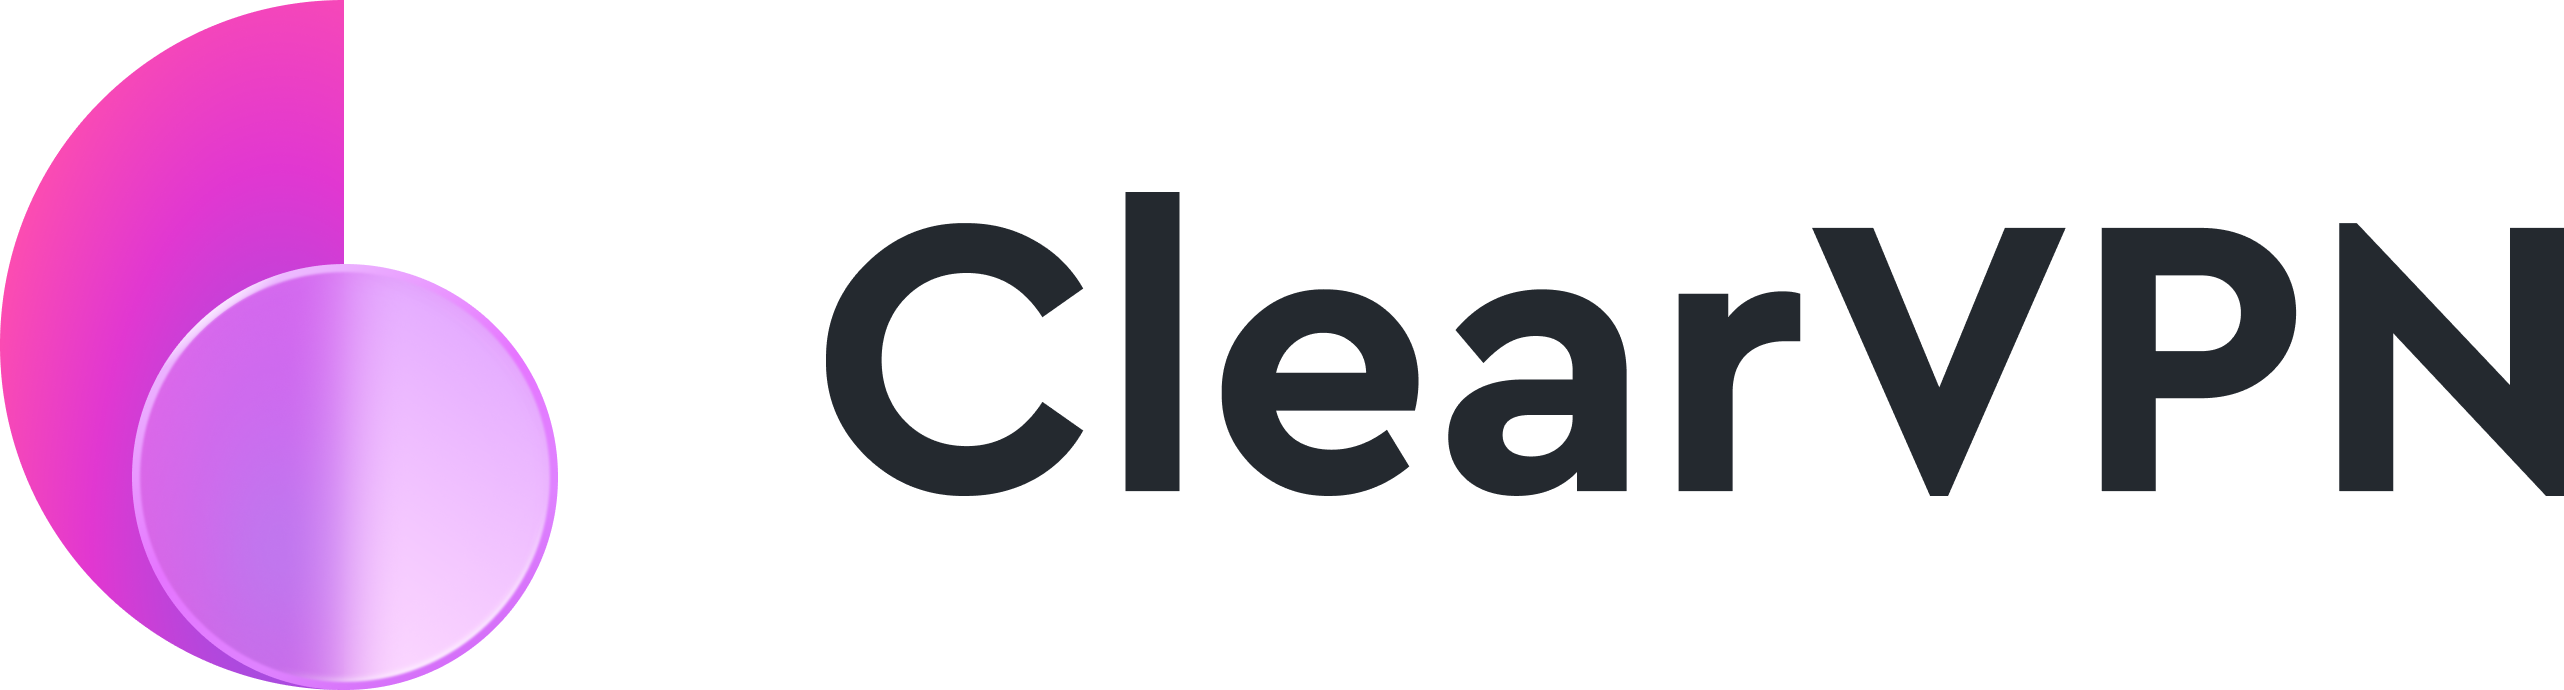 ClearVPN Help Center home page